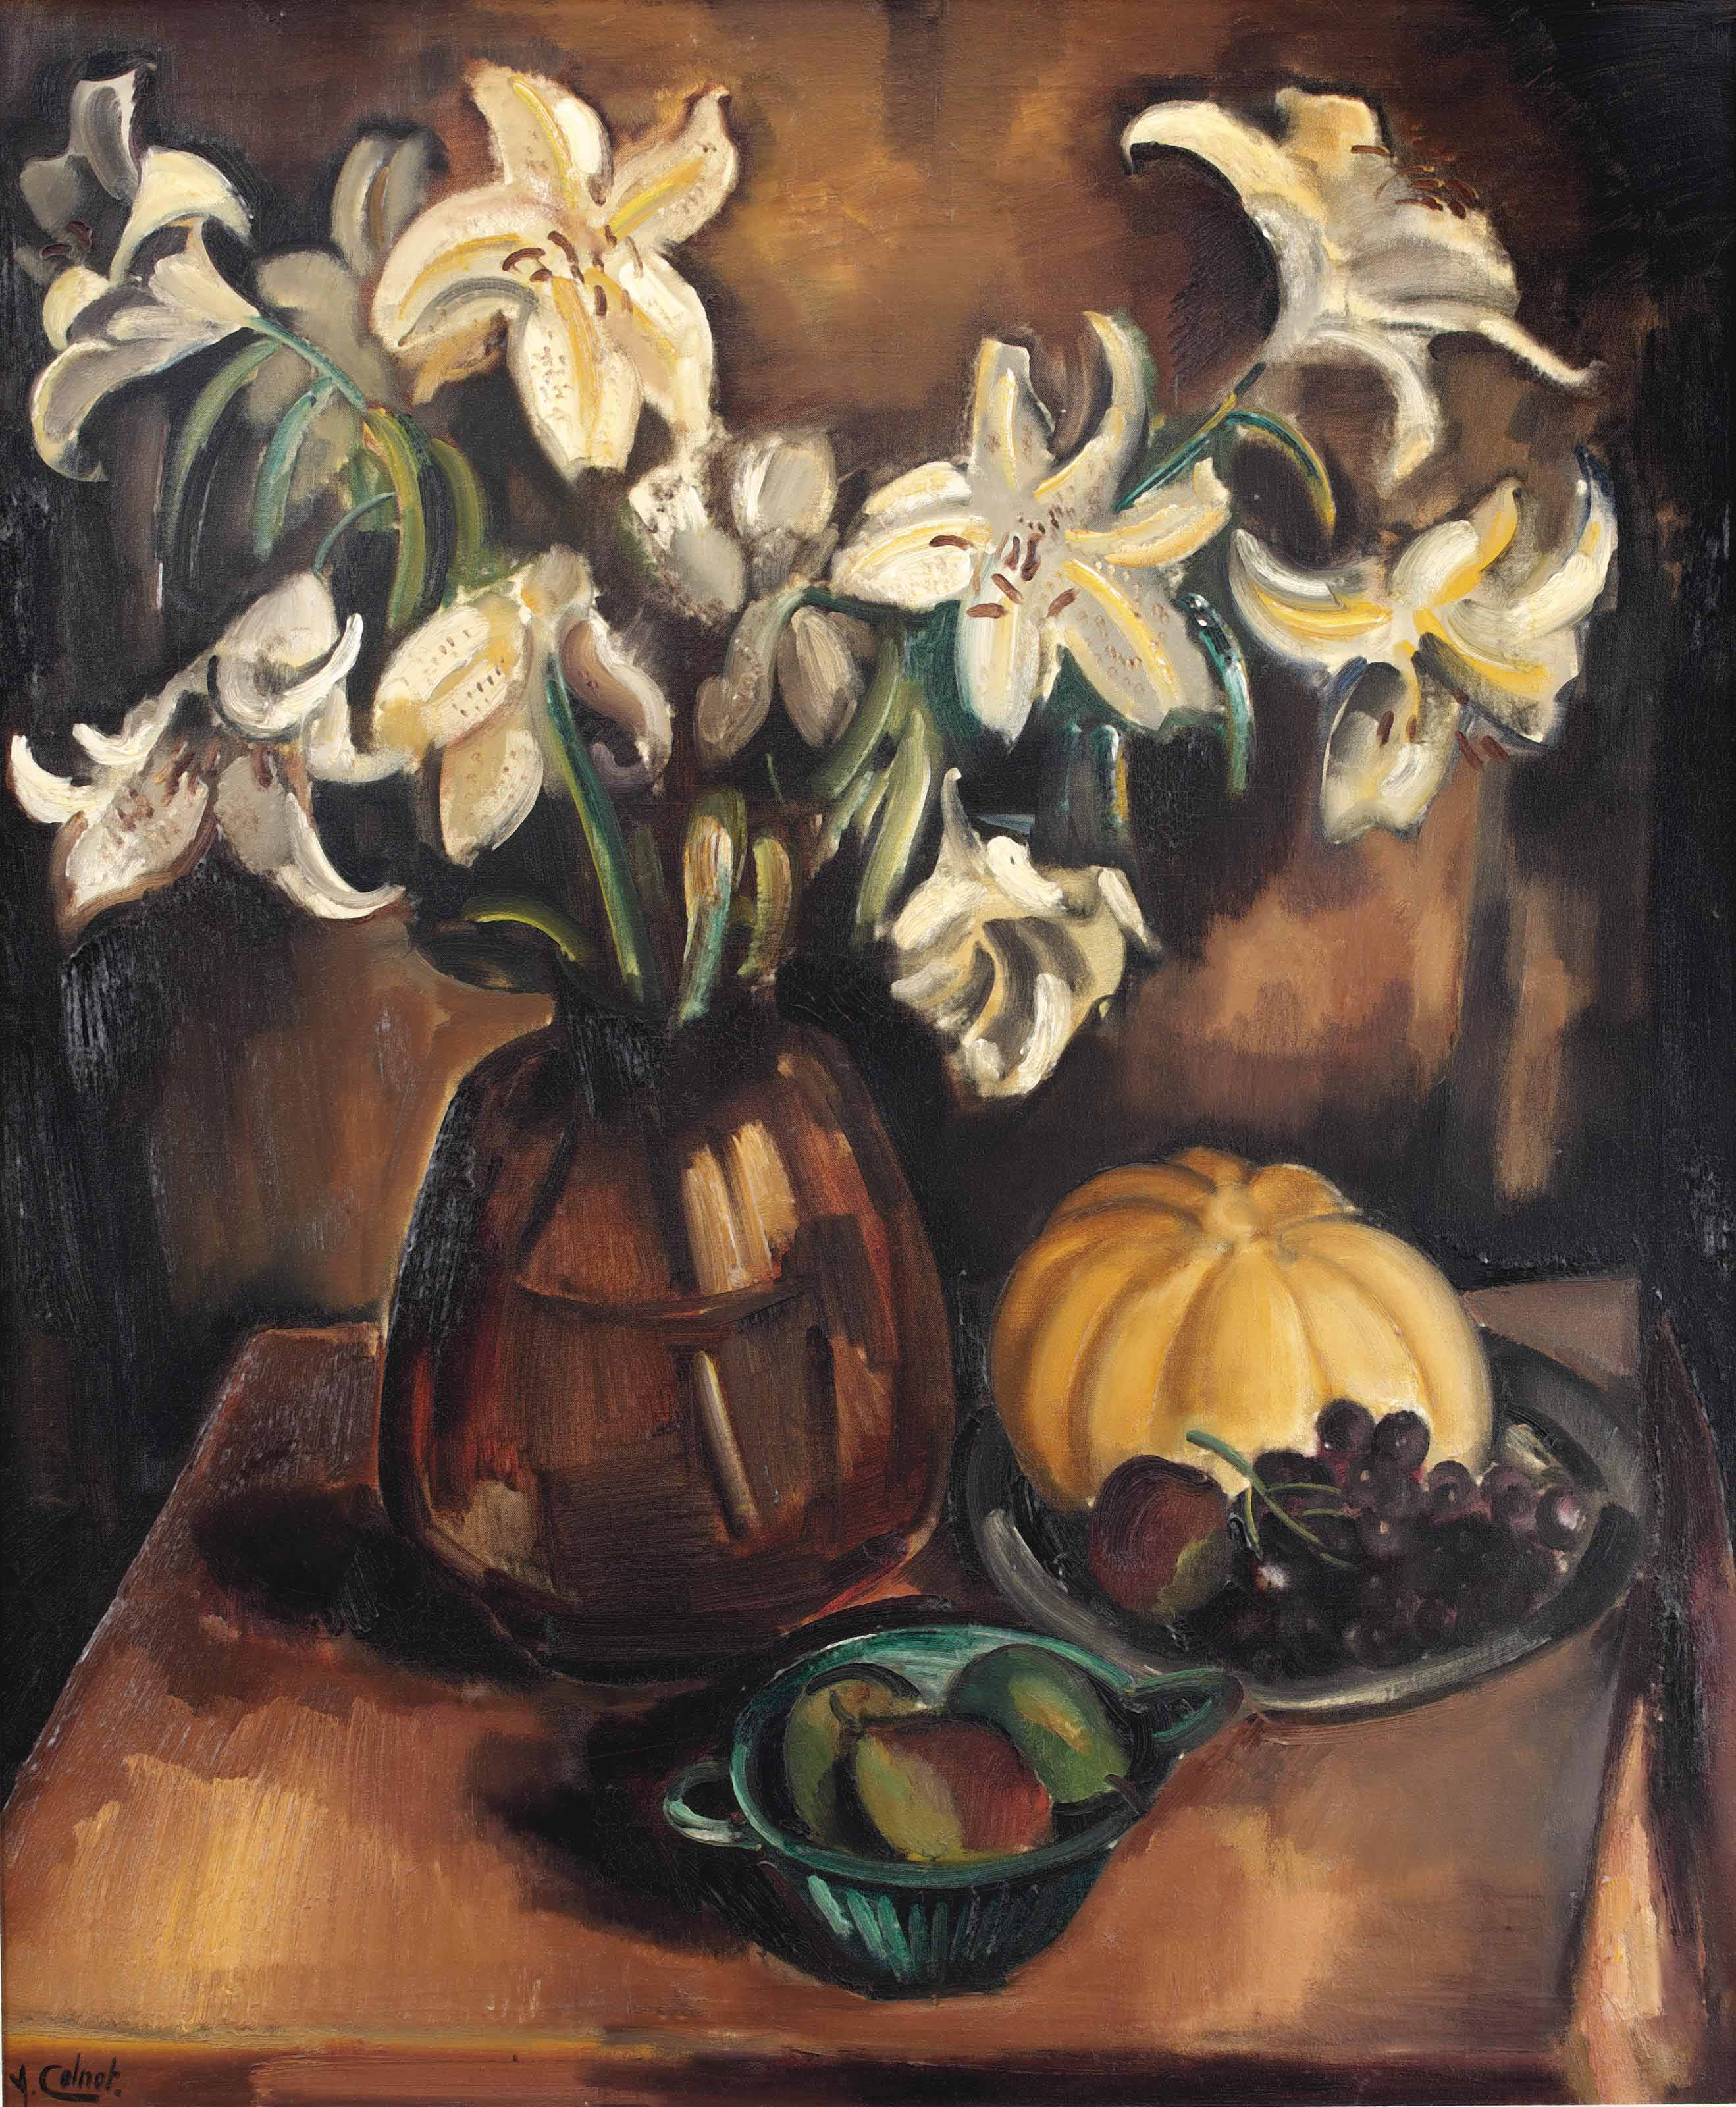 A still life with lilies, a pumpkin, grapes and pears